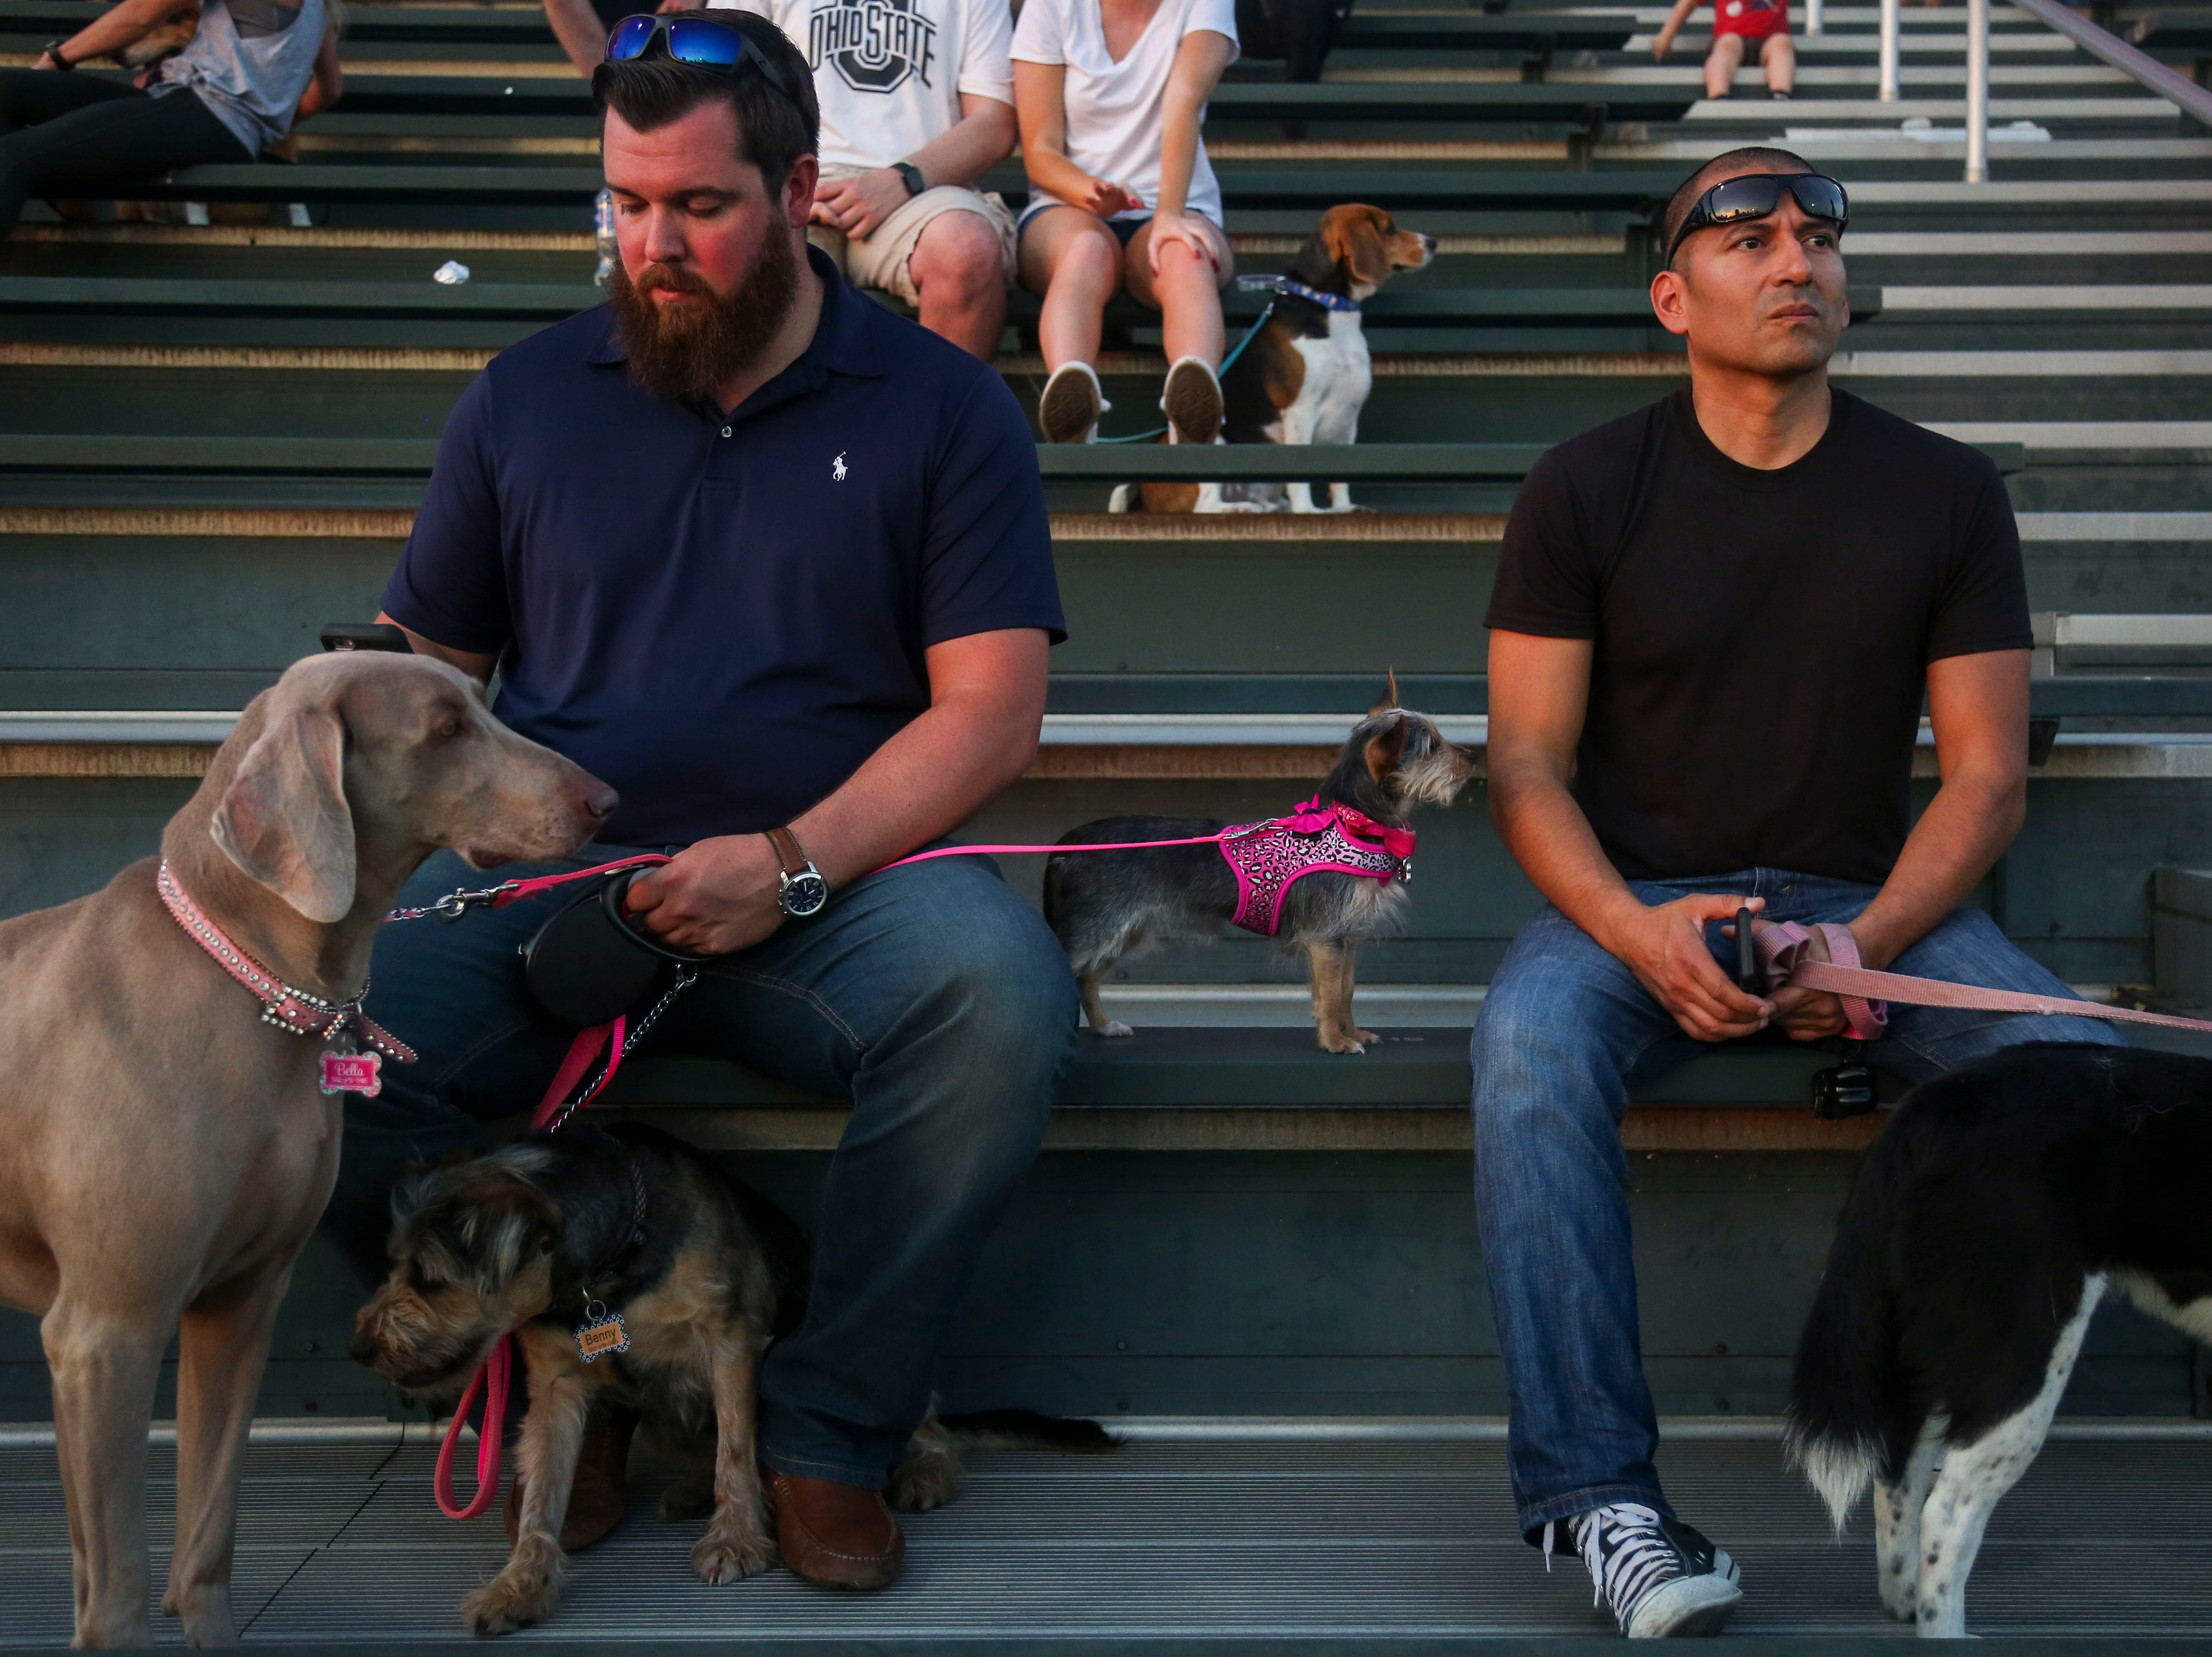 Chris Cadle, left, and Gabe Tagle, right, watch the Louisville Bats v. Syracuse Mets game during Dog Day Nights at Louisville Slugger Field in downtown Louisville, Ky. on Tuesday, May 7, 2019.